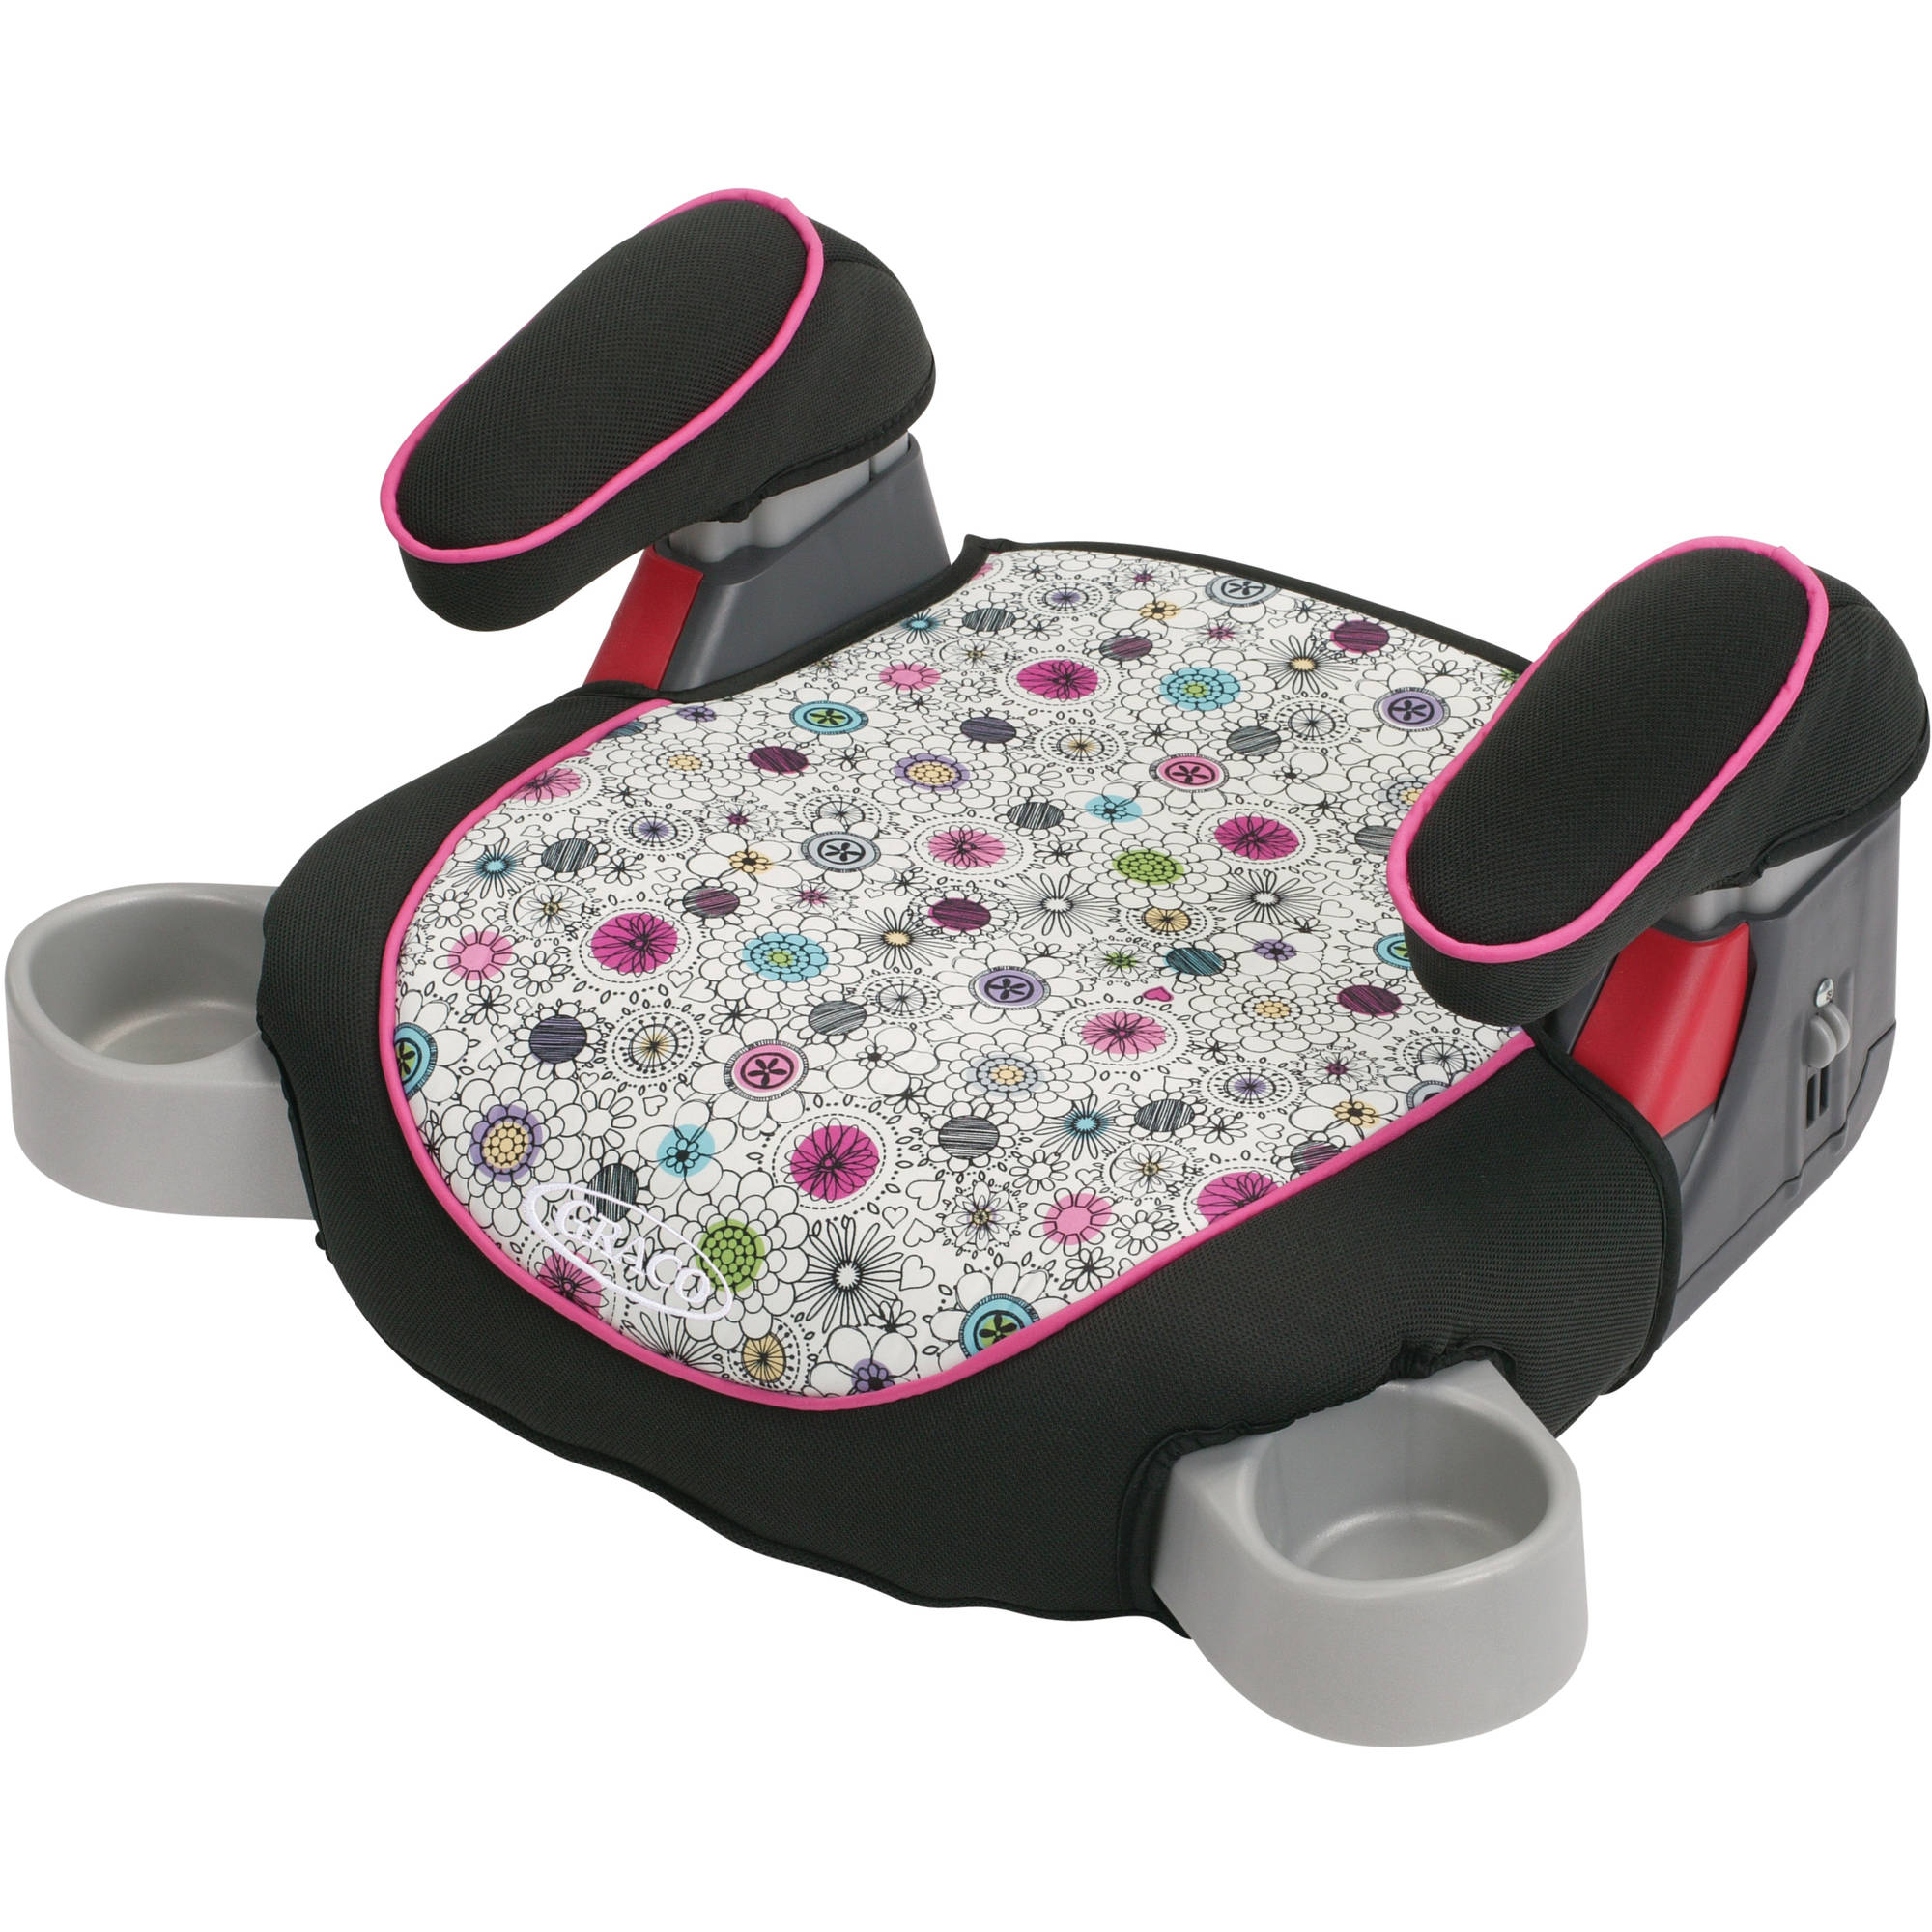 Graco TurboBooster Backless Booster Car Seat Claire Walmart Inventory Checker BrickSeek